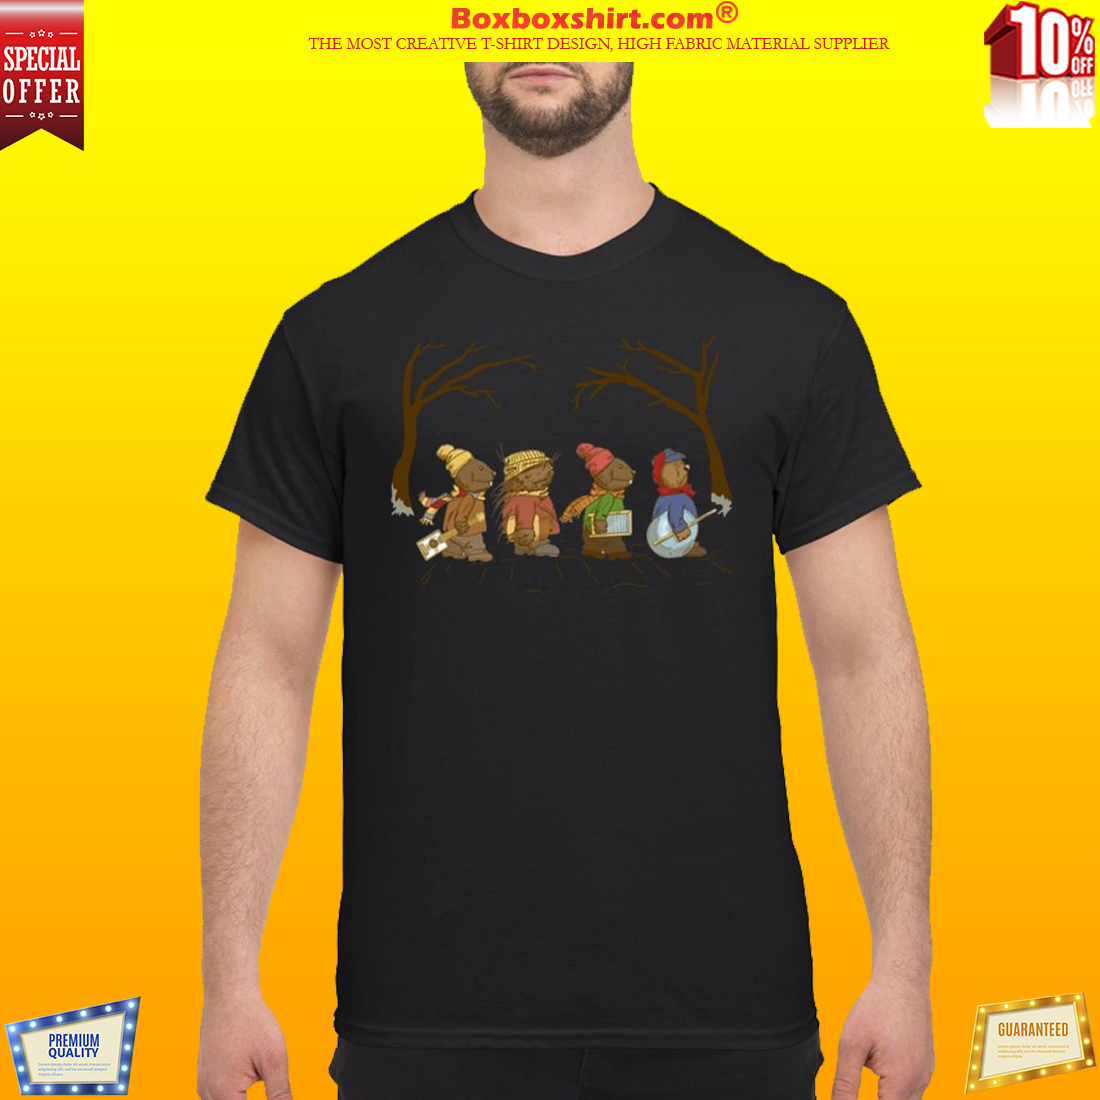 Emmet Otter Jug band Christmas shirt